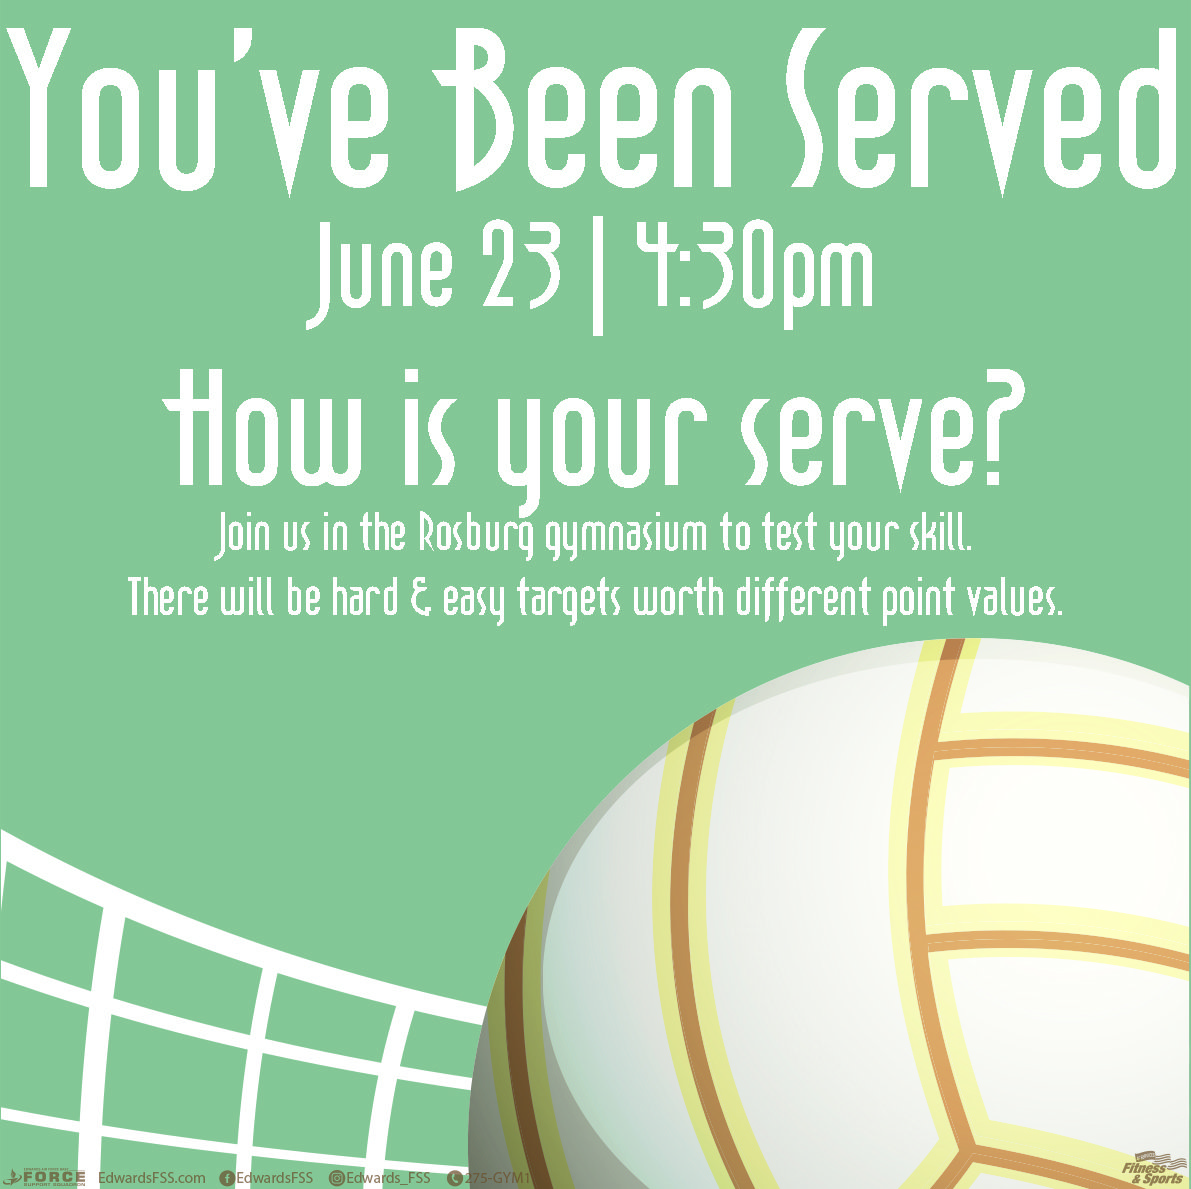 You've Been Served-Edwards Air Force Base Gym